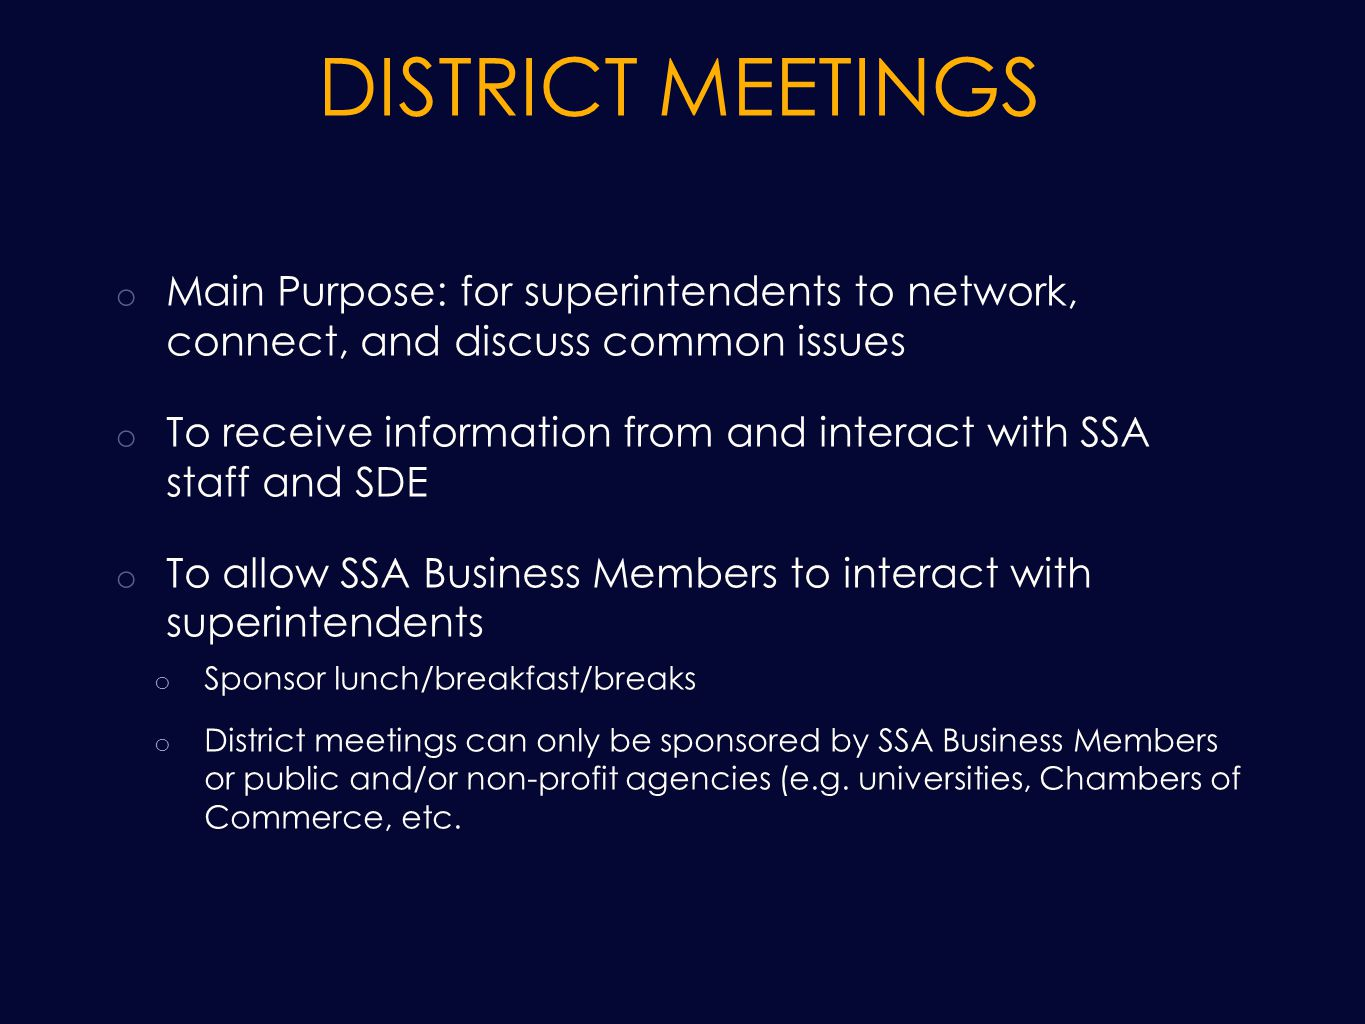 DISTRICT MEETINGS o Main Purpose: for superintendents to network, connect, and discuss common issues o To receive information from and interact with SSA staff and SDE o To allow SSA Business Members to interact with superintendents o Sponsor lunch/breakfast/breaks o District meetings can only be sponsored by SSA Business Members or public and/or non-profit agencies (e.g.